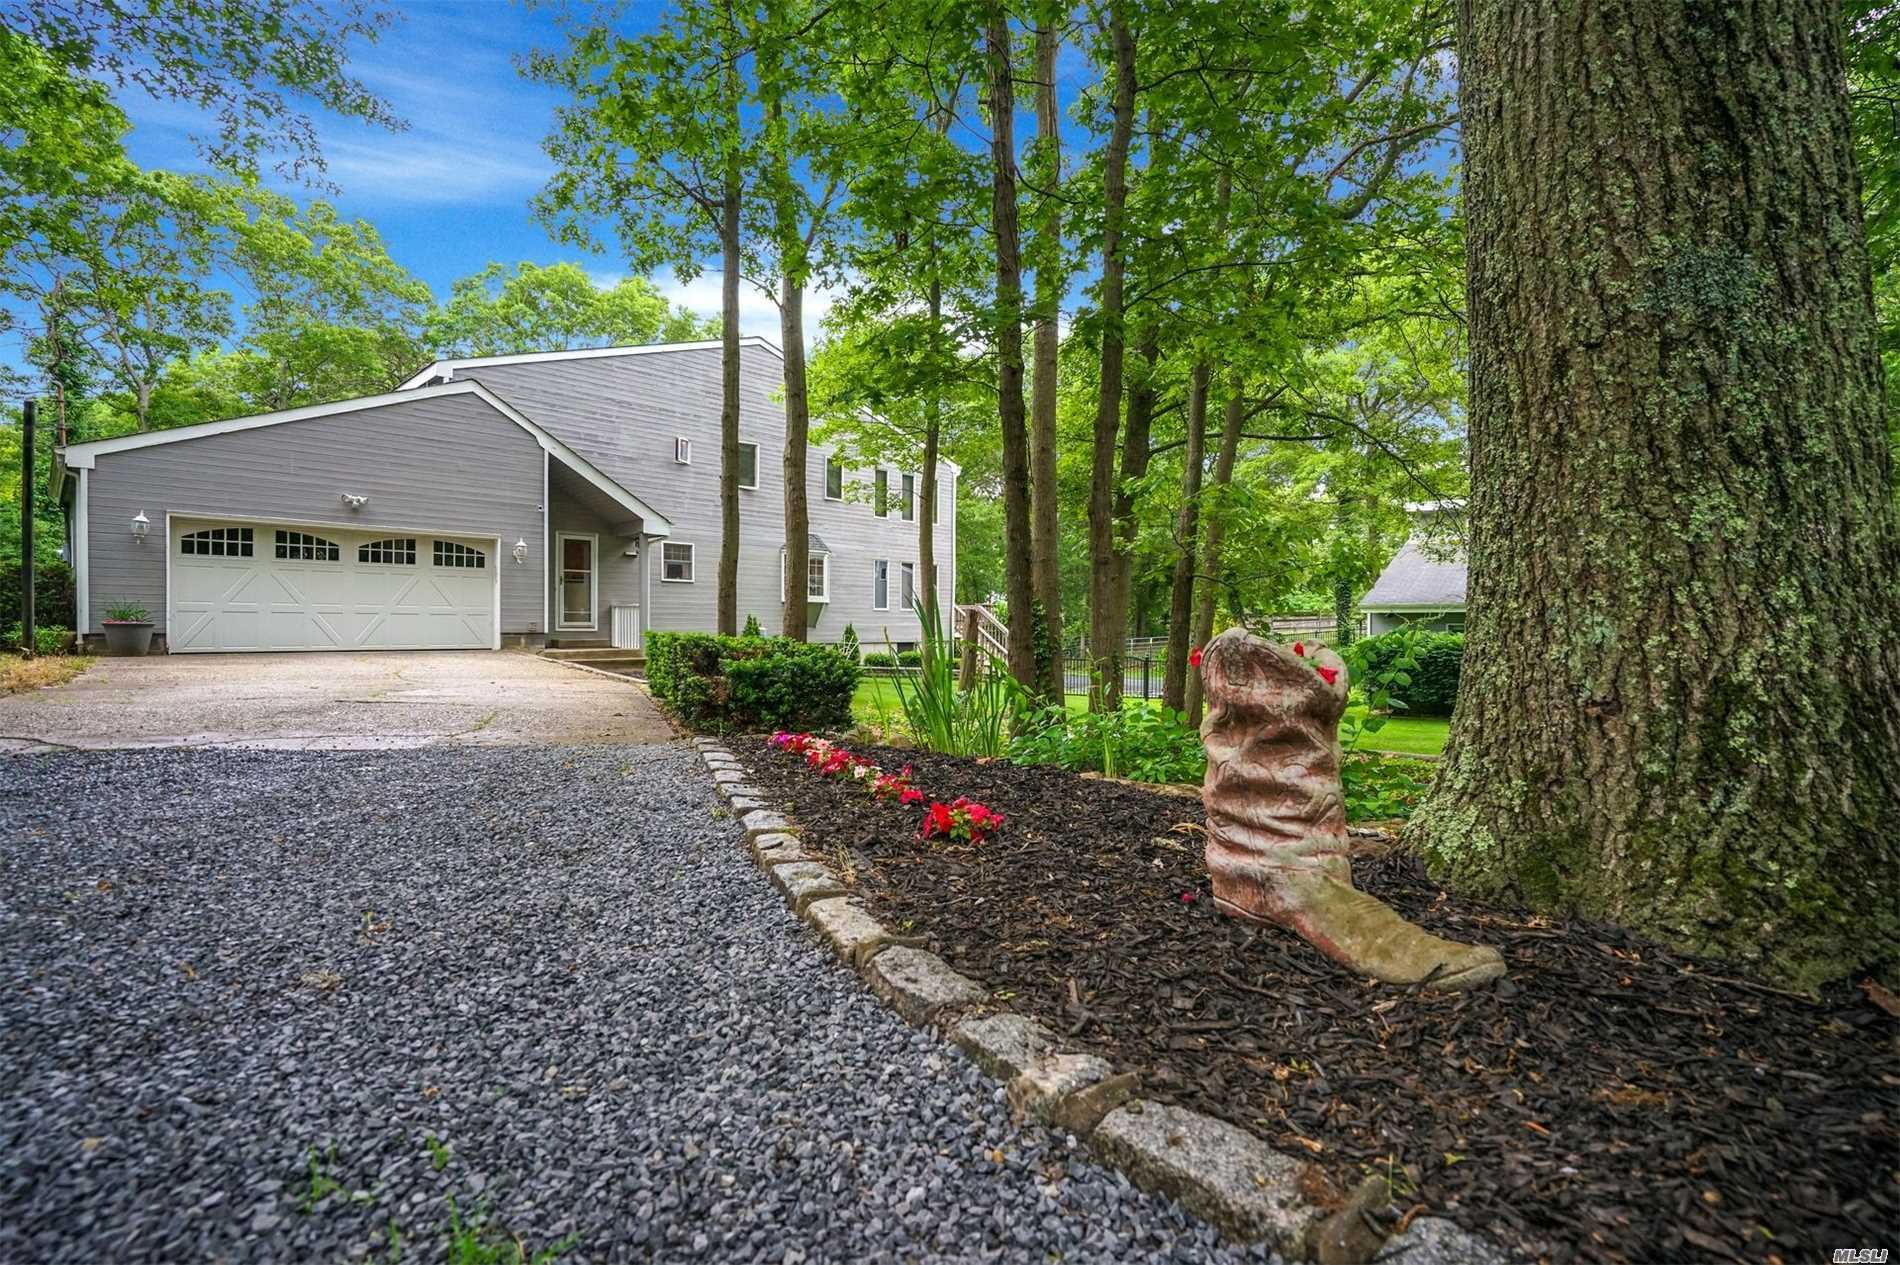 Enjoy The Tranquil Privacy Of This Beautiful Home Nestled On 2.1 Acres, Sprawling 4 Bdrm Contemporary Colonial W/ Open Floor Plan, Country Living At Its Best. New Eik And Updated Baths! Room For Extended Family Or Guests W/Fin Bsmt And Ose. Refreshing Ig Pool Overlooking Private Grounds. 2 Stall Center Is Barn W/Loft Water And Electric And Garage Bay. 2 Lean-To's